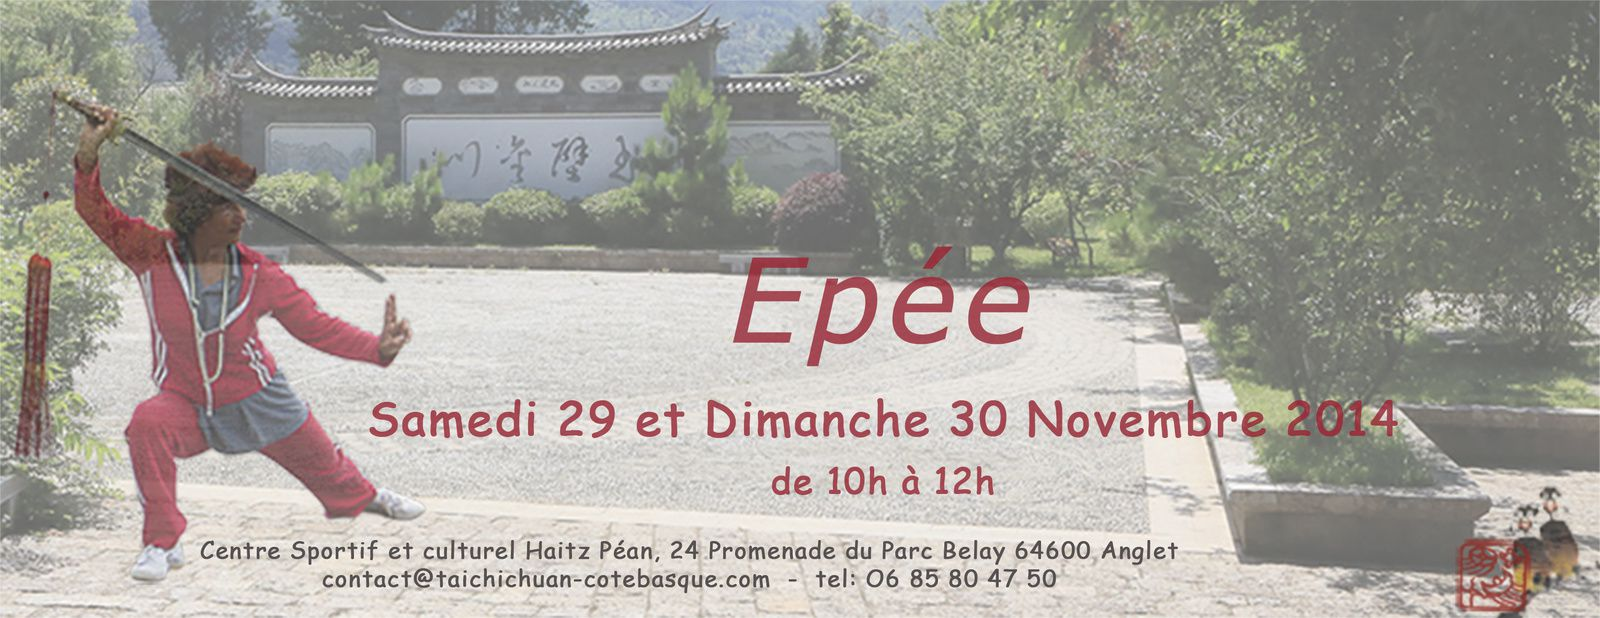 atelier ep e samedi 29 et dimanche 30 novembre 2014 taichichuan c te basque. Black Bedroom Furniture Sets. Home Design Ideas